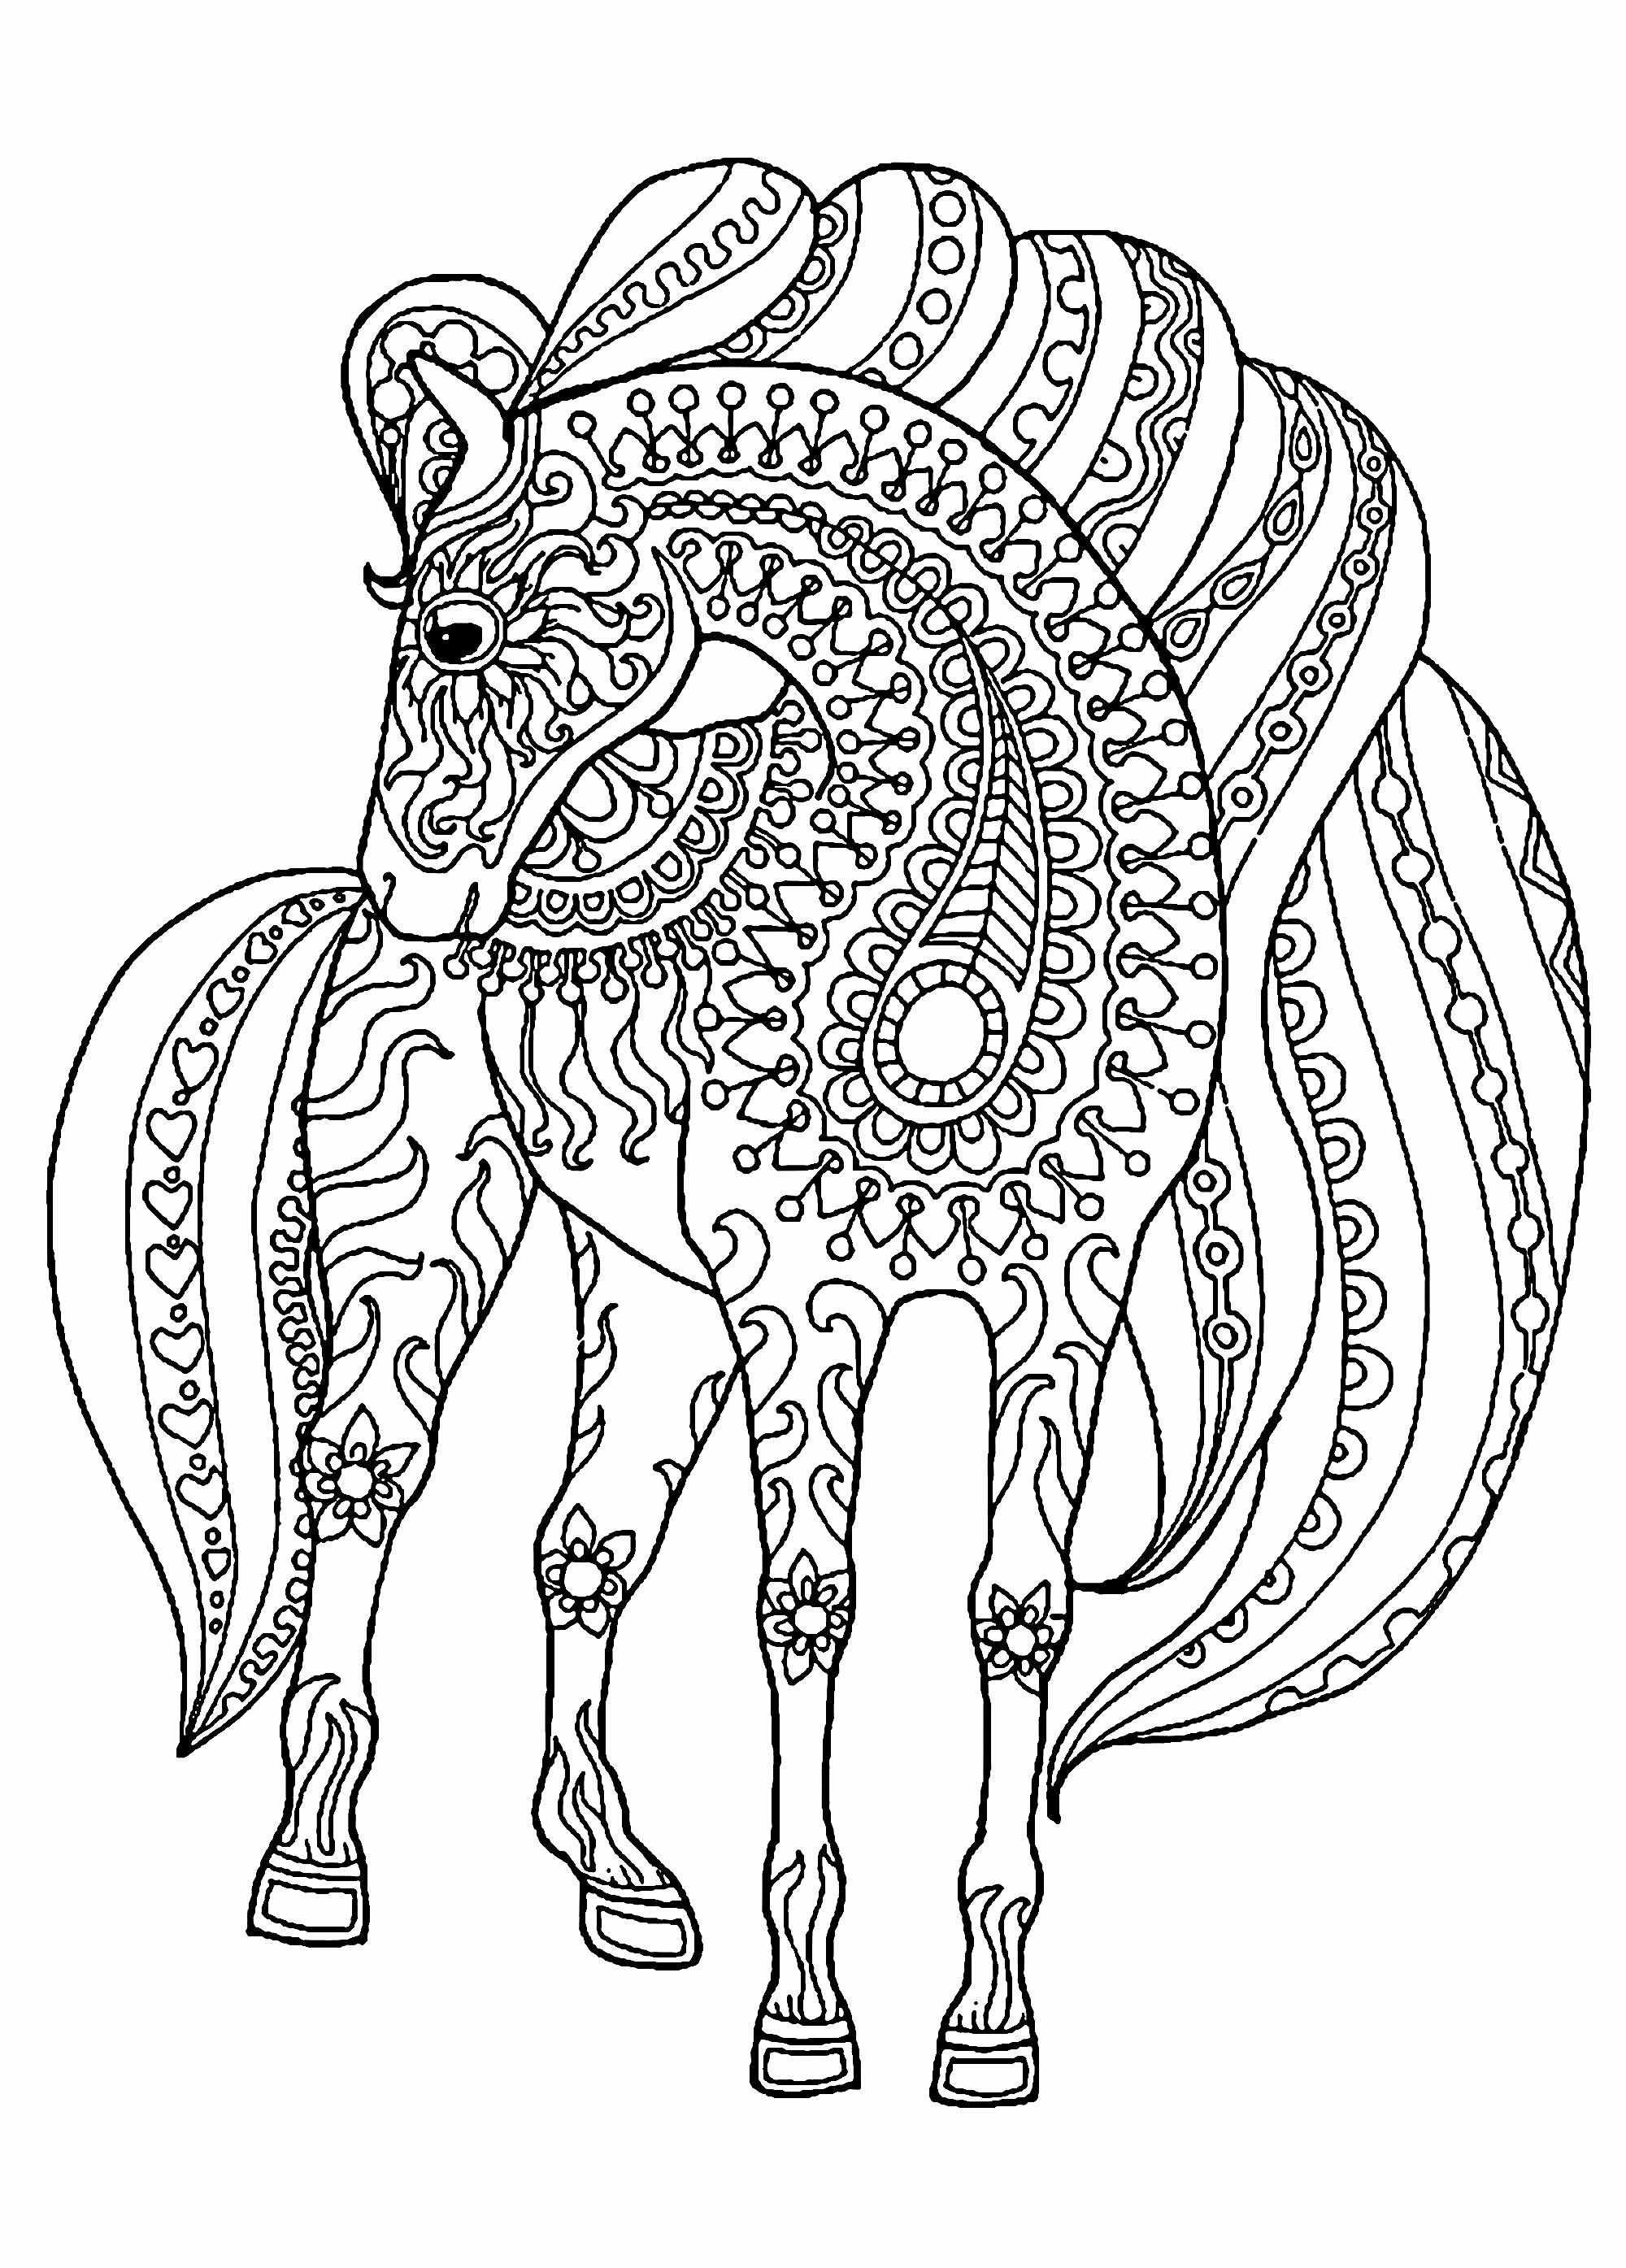 Coloring Horse Cartoon in 2020 | Horse coloring pages ...